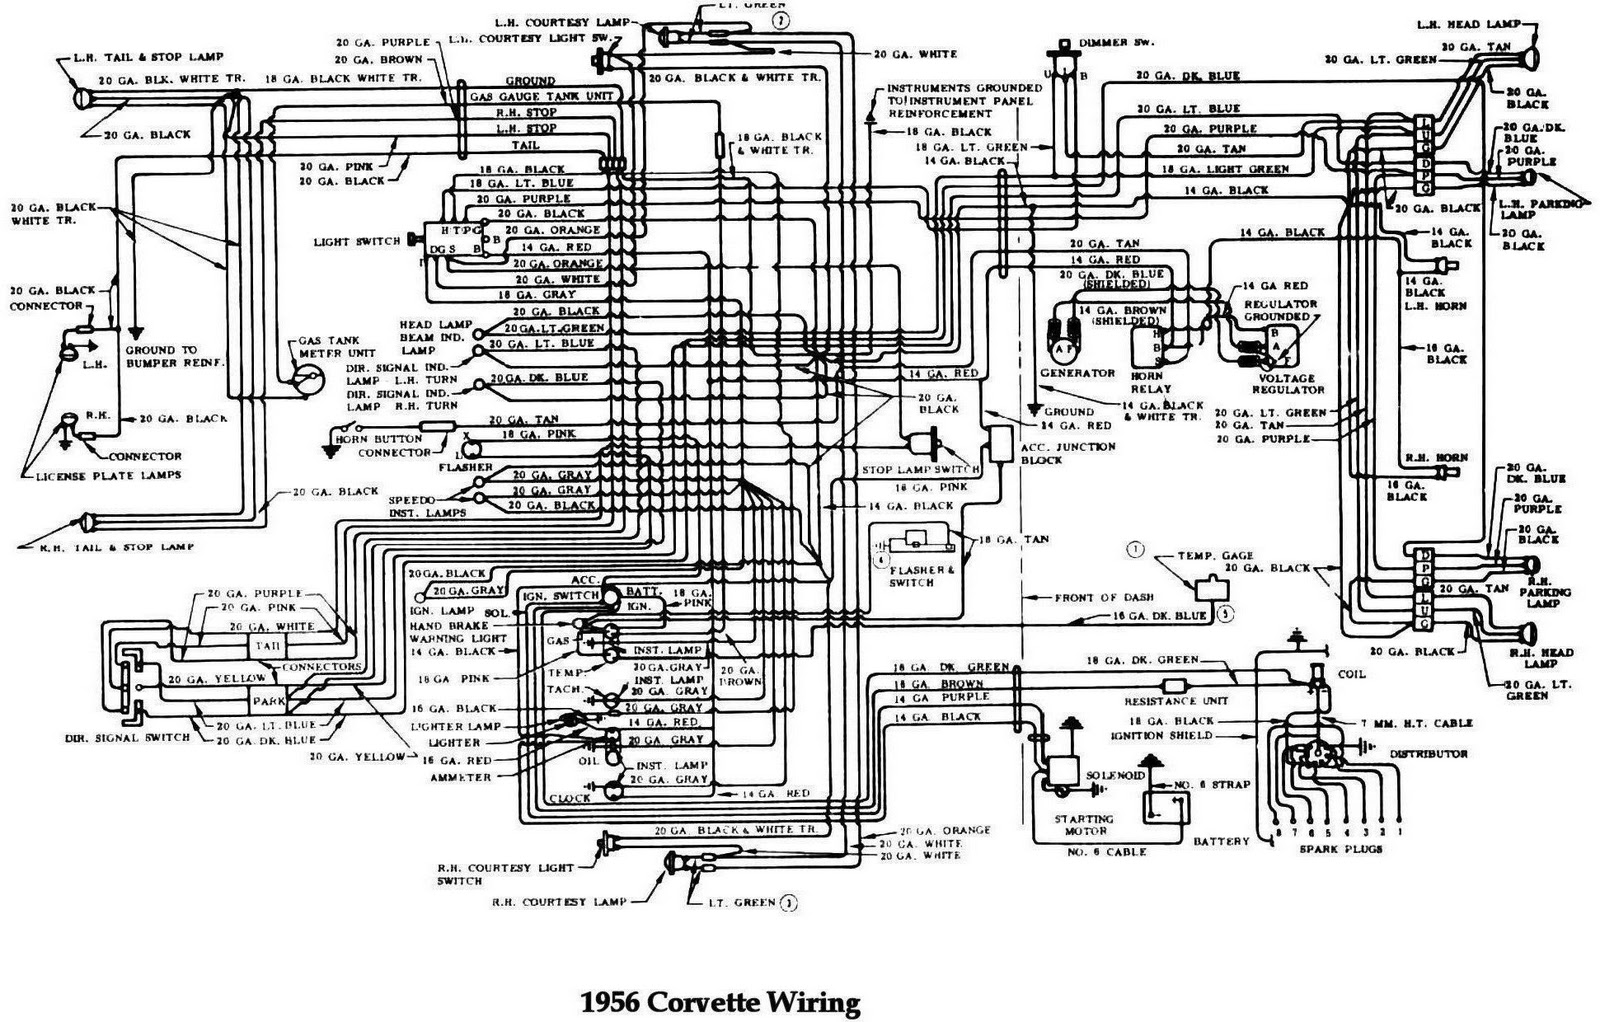 Diagram Electrical Wiring Diagram For 1956 Chevrolet Corvette